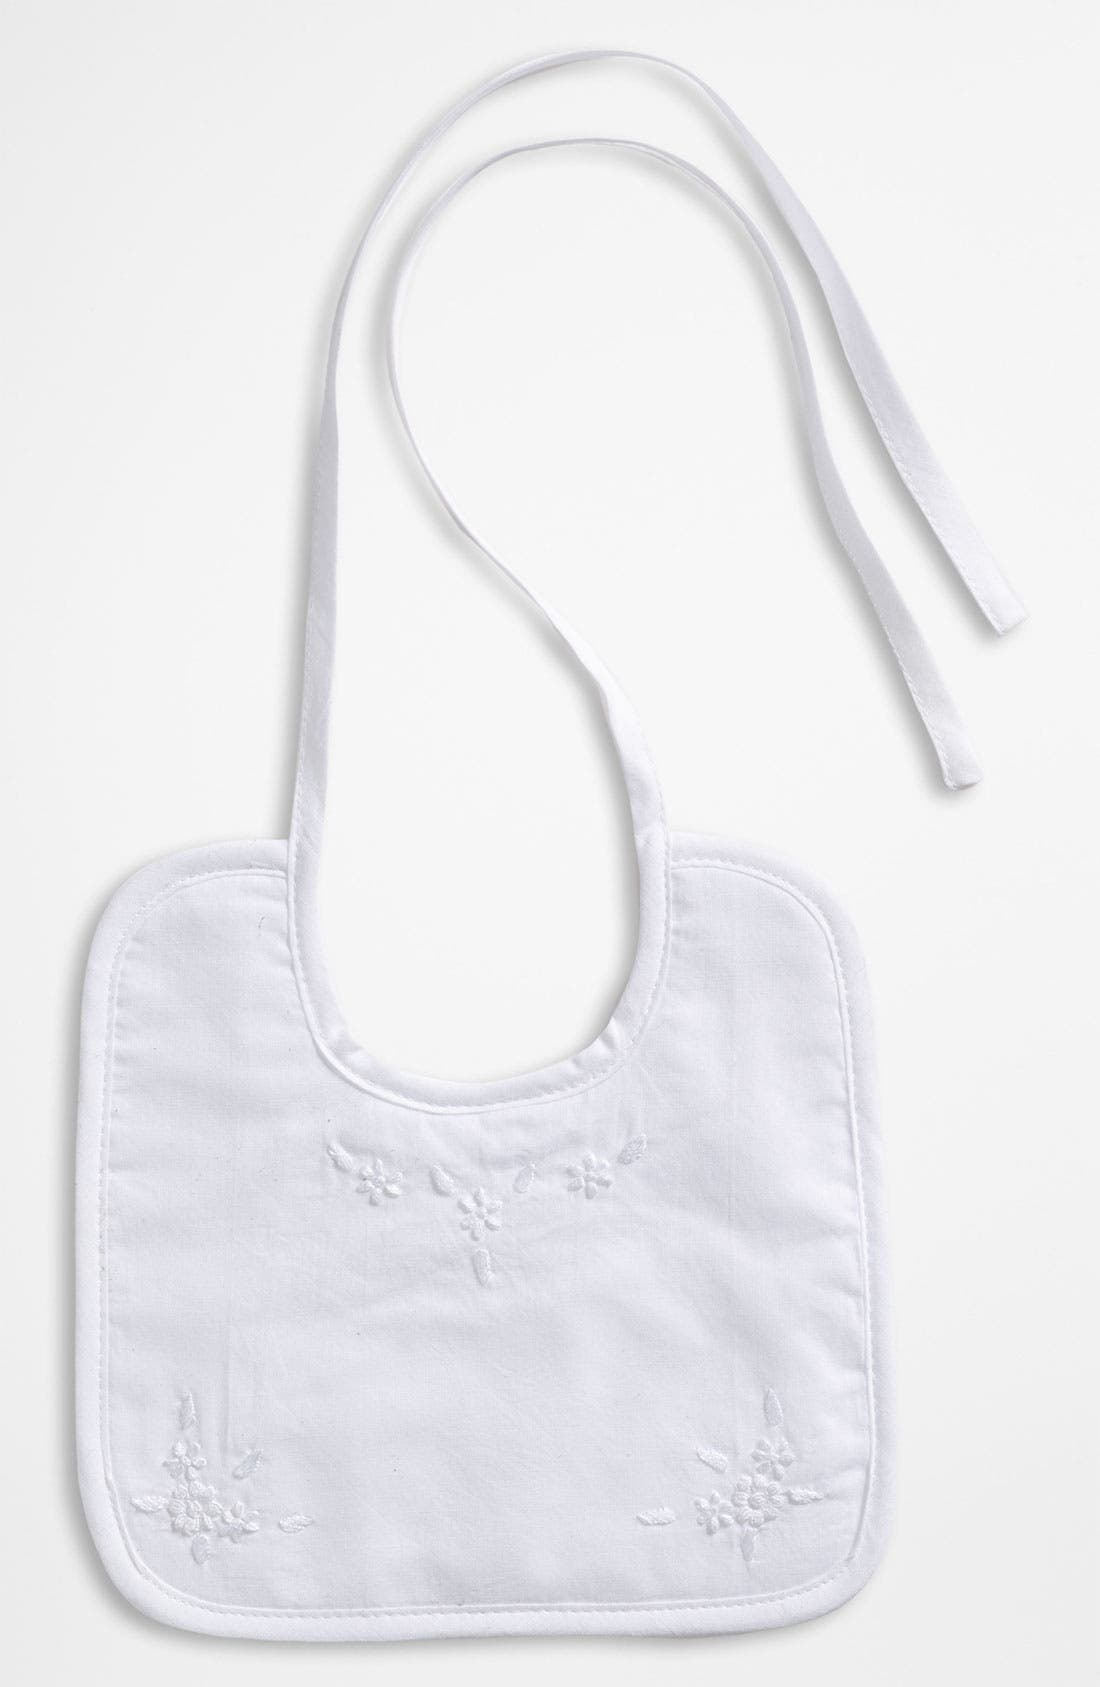 Alternate Image 1 Selected - Little Things Mean a Lot Embroidered Bib